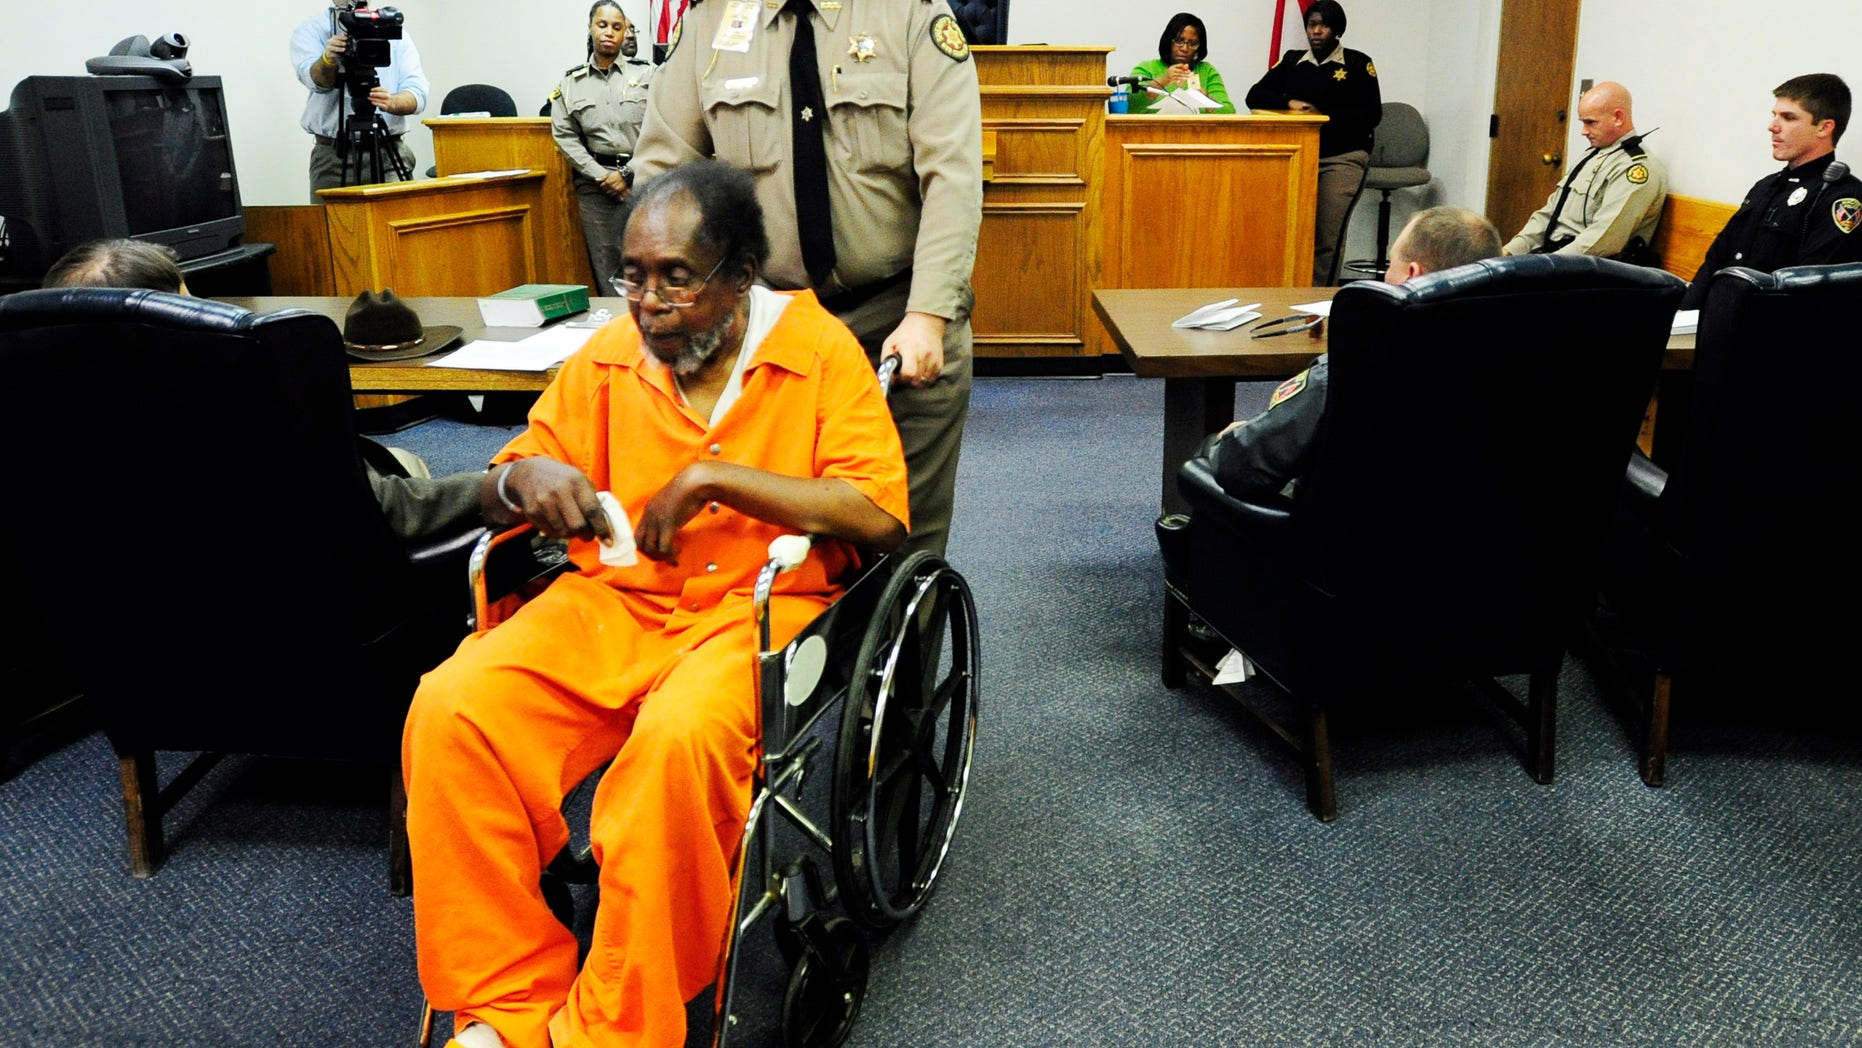 Dec. 4, 2012: Frank Louis Reeves is wheeled out of the courtroom after his first appearance in Macon Ga. No bond was set Wednesday afternoon, Dec. 5, 2012, for Reeves who is accused in the death of a woman outside a Gray Highway gas station after his motorized wheelchair bumped her car.